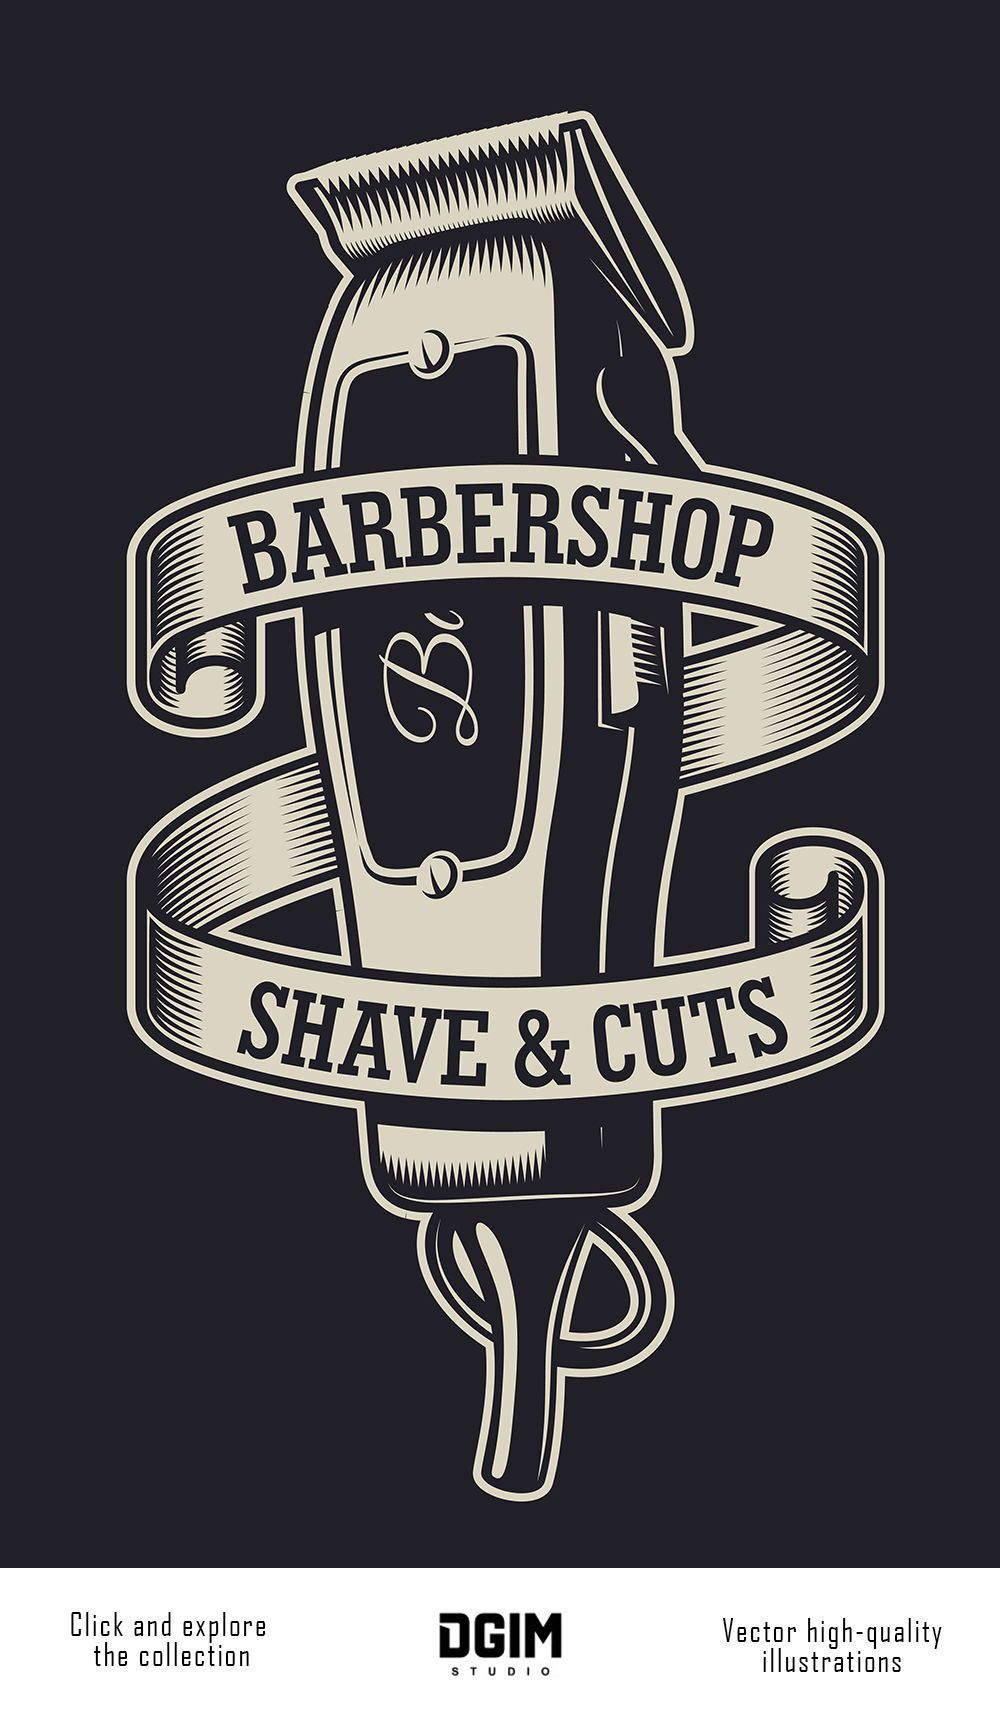 Vintage monochrome Barbershop emblem with an electric hair clipper. Super quality & Editable text. CLICK ON THE LINK to find more barbershop elements, badges, emblems and designs. #vectorillustration #vector #illustration #design #dgimstudio #barber#barbershop #hairdresser #electric #hairclipper